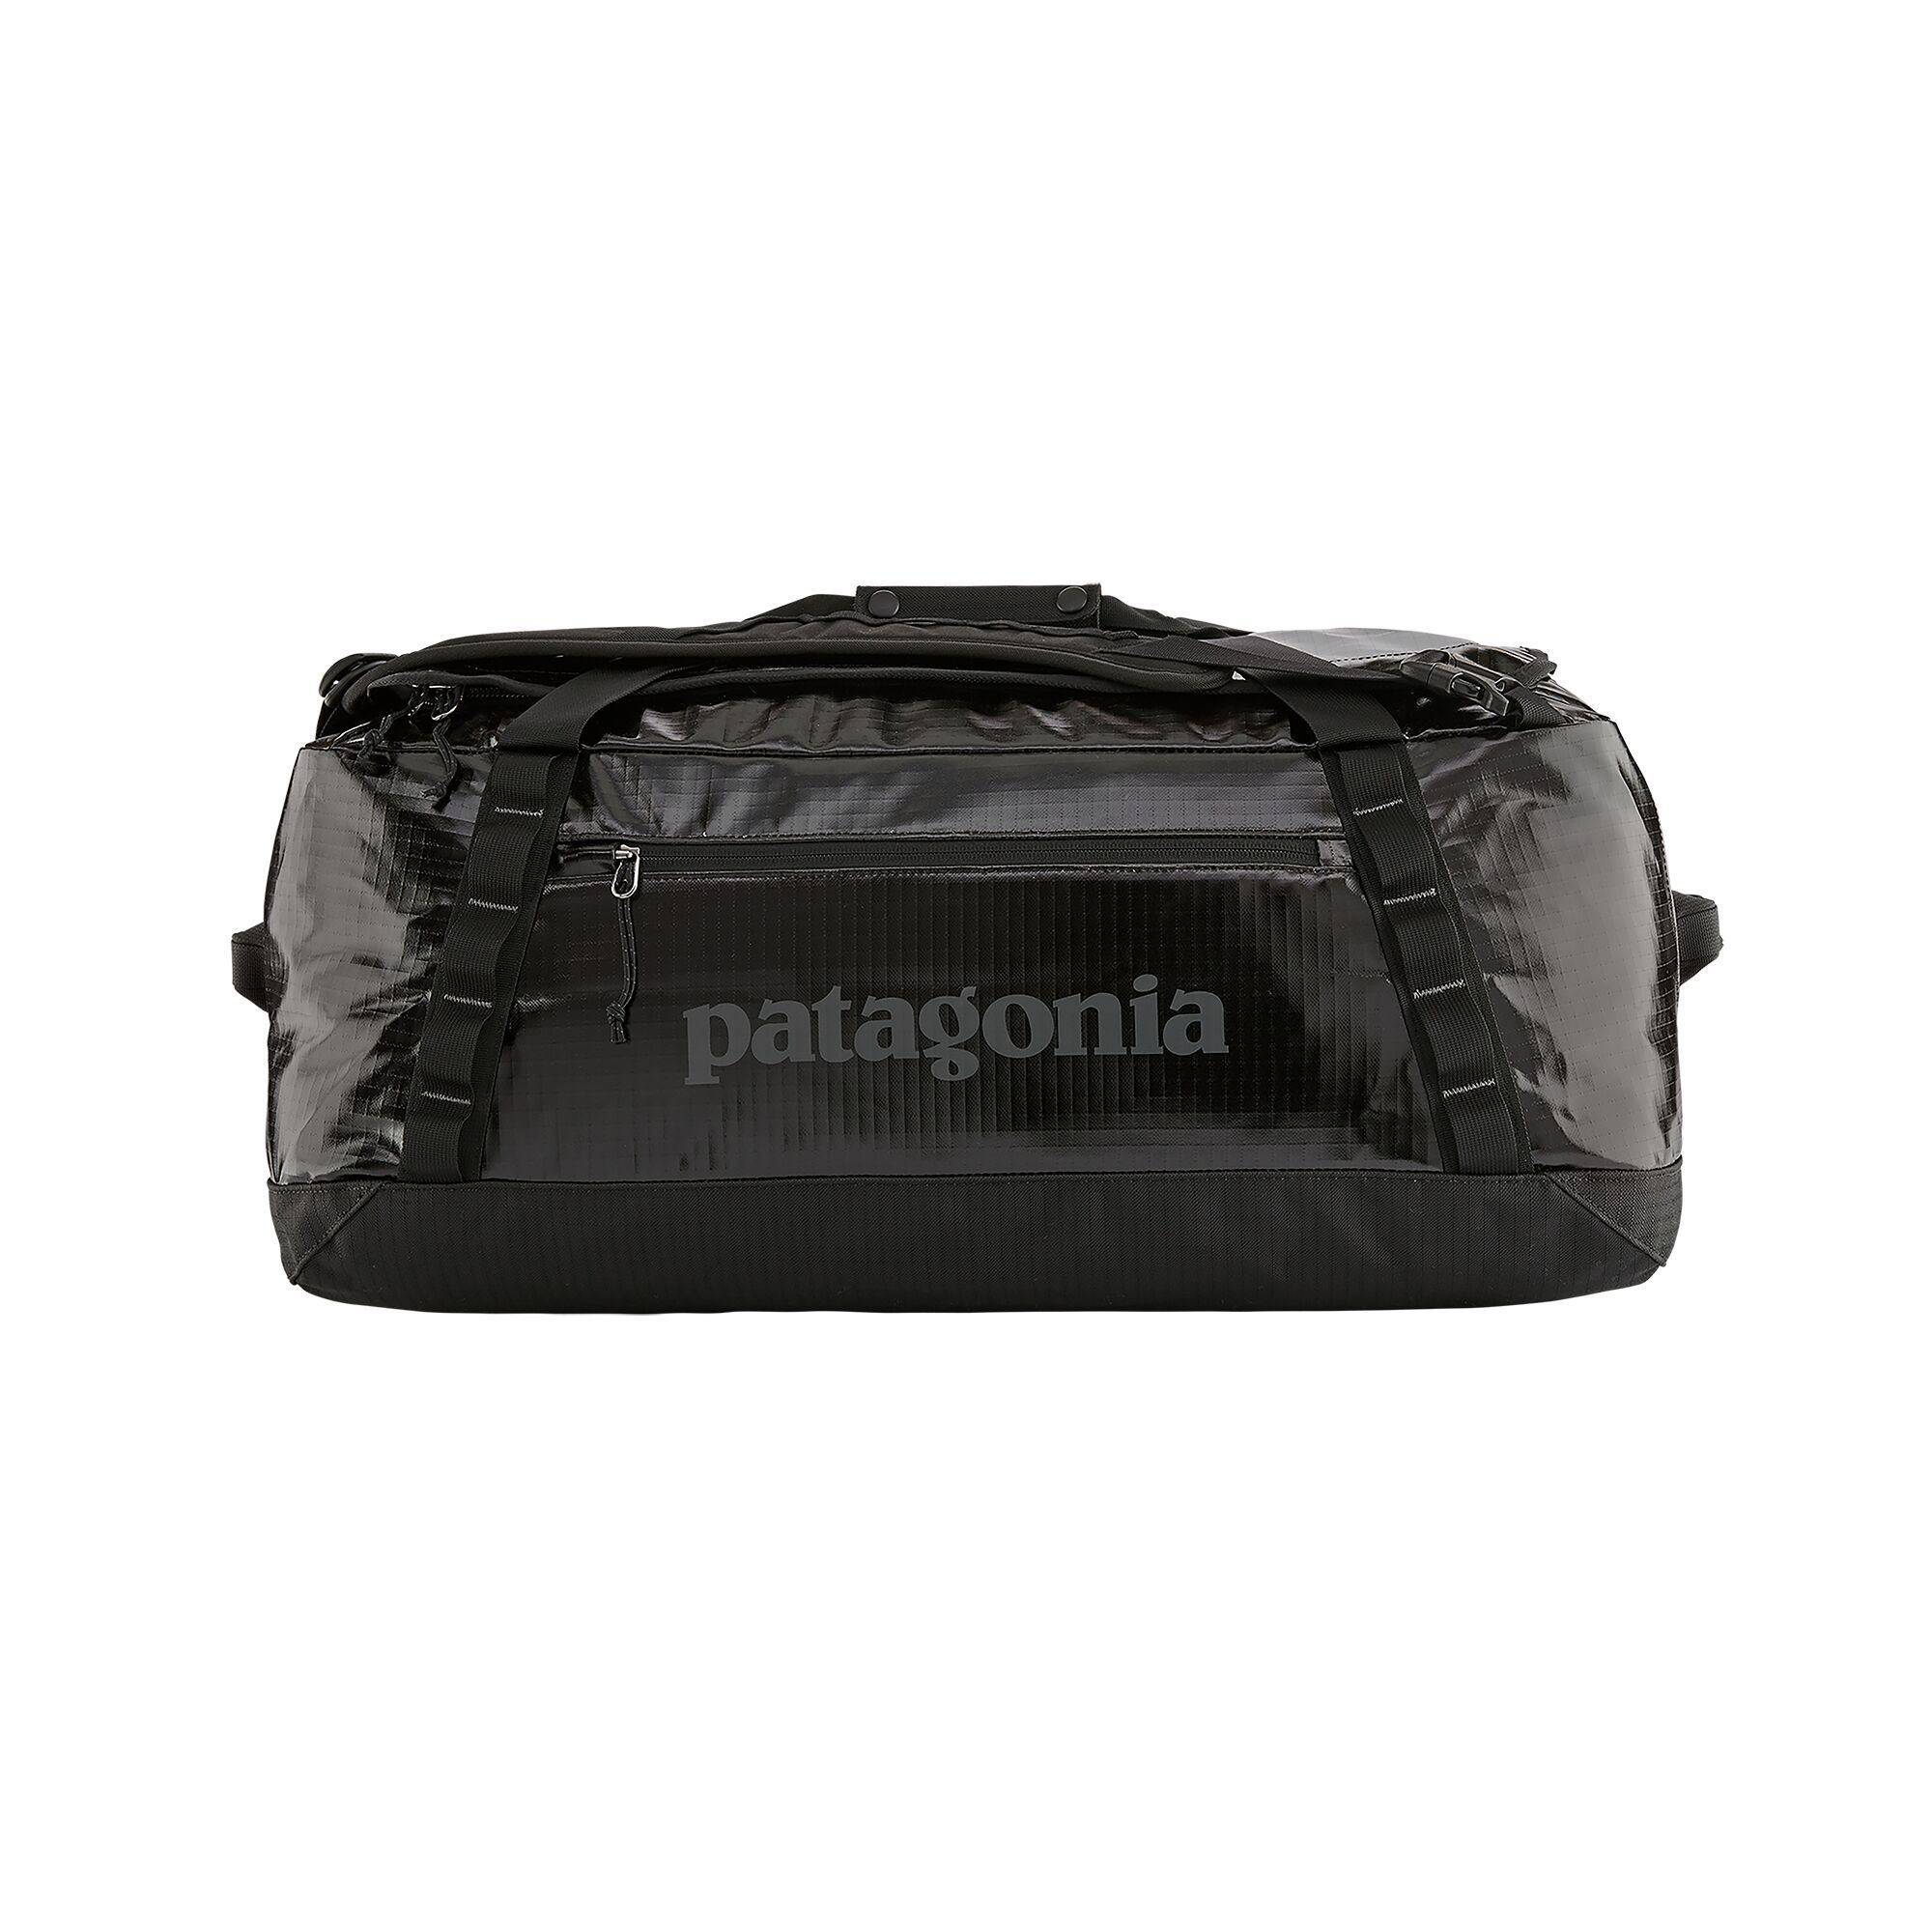 Patagonia - Black Hole Duffel Bag 55L - 100 % Recycled Polyester - Weekendbee - sustainable sportswear